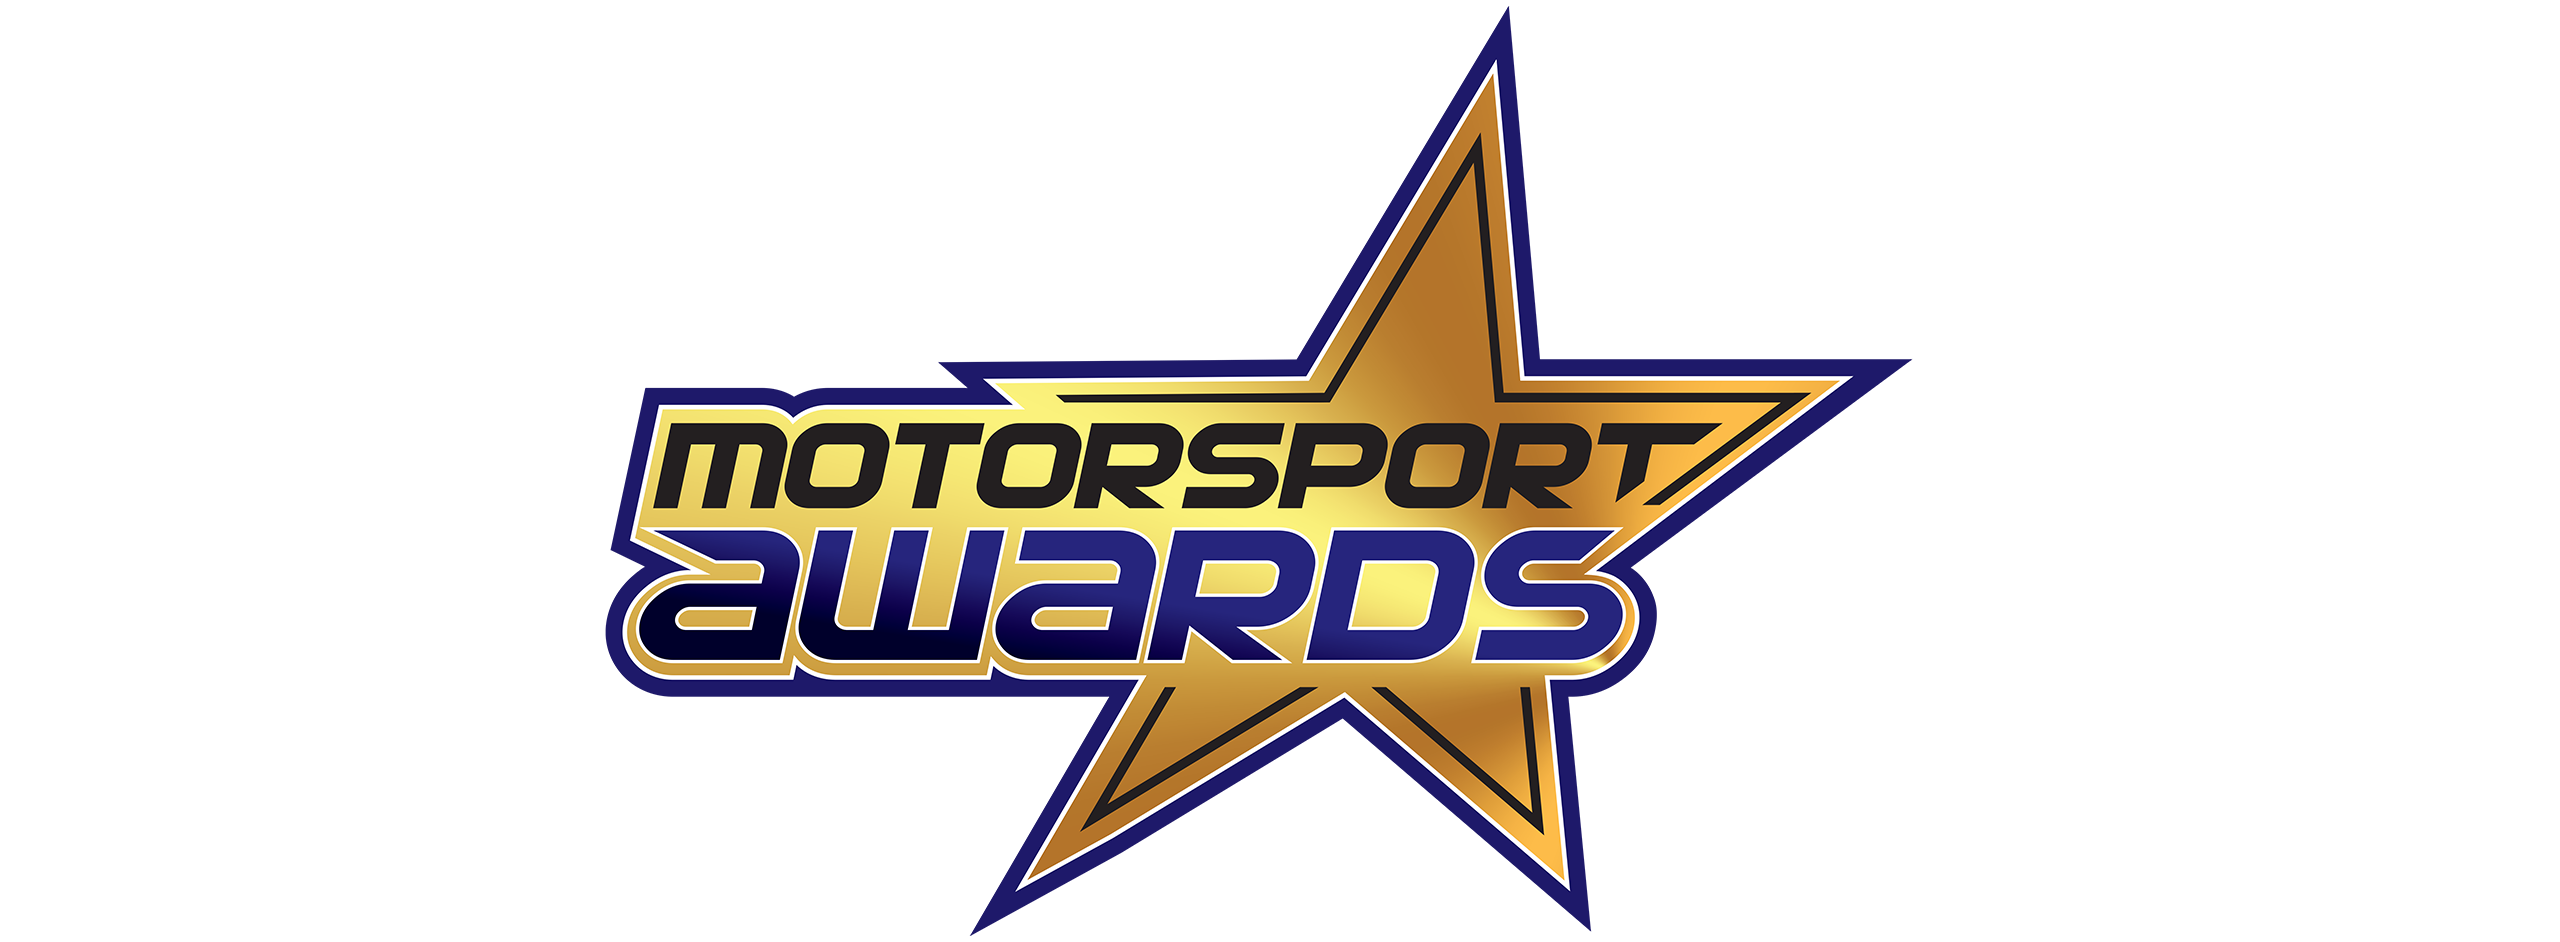 http://motorsport.media/wp-content/uploads/2019/01/awards-1.png